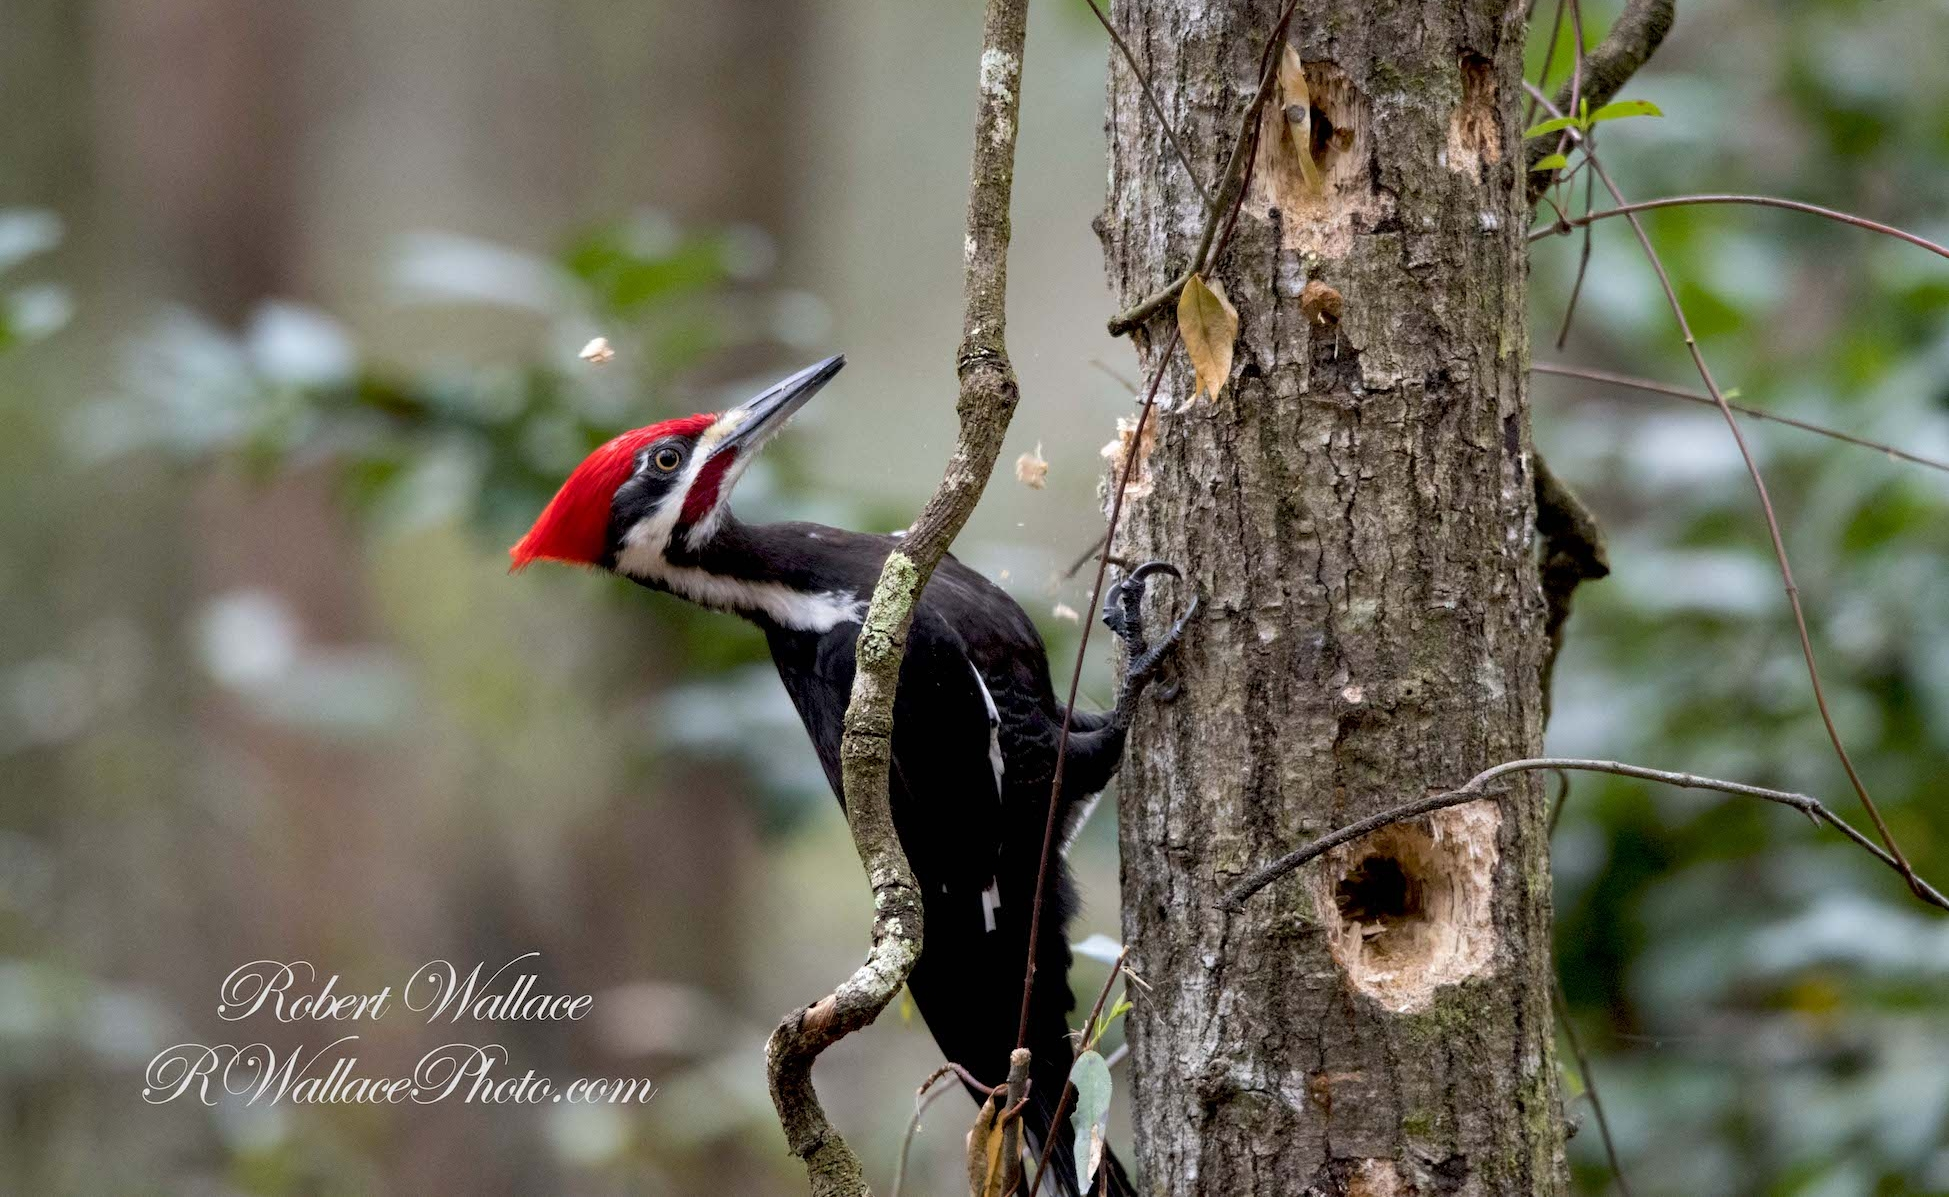 PILEATED WOODPECKER HAS BEEN AN OLD FRIEND EVER SINCE I LEARNED TO LACE MY SHOES. SOMETHING TOLD ME TO GO JUST A LITTLE FURTHER AND I MET UP WITH THIS GUY. IMAGE: ©ROBERT WALLACE, RWALLACE PHOTO.